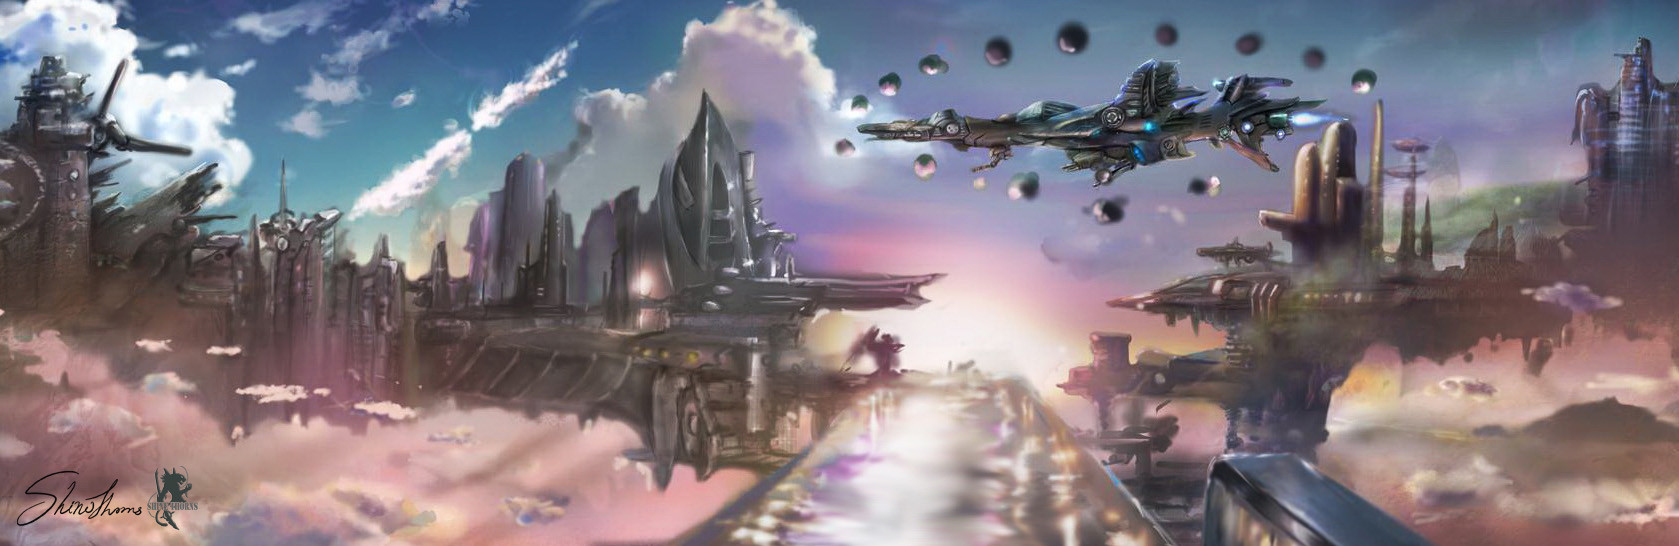 Mothership and Future Architecture  母艦與未來建築